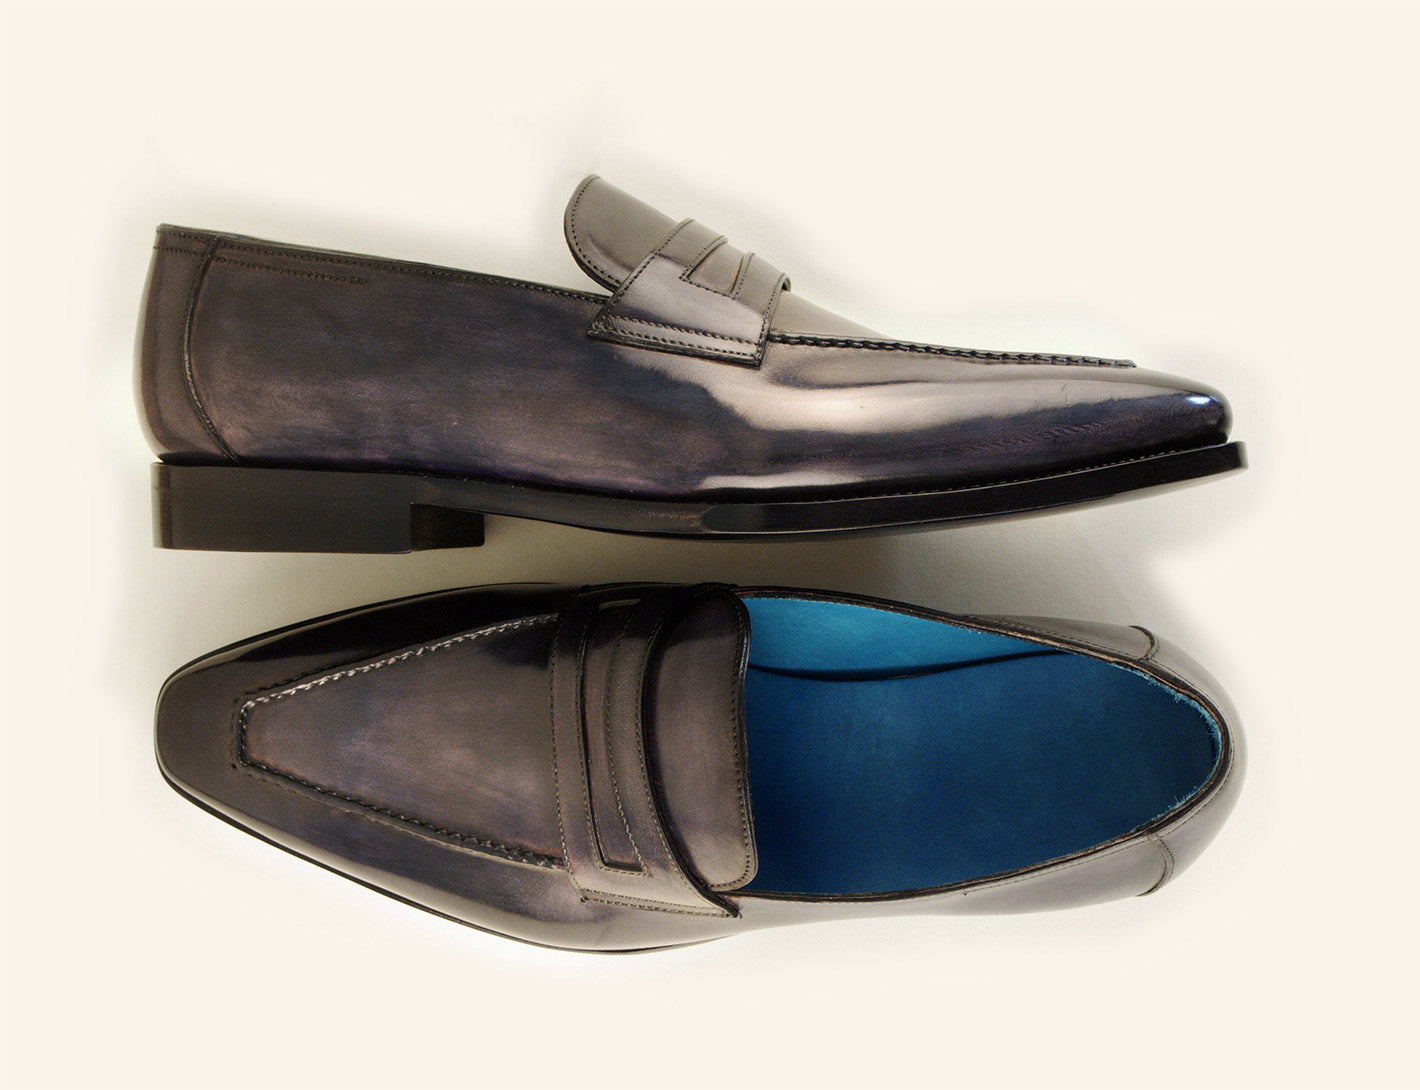 Alex loafer shoes with hand painted patina